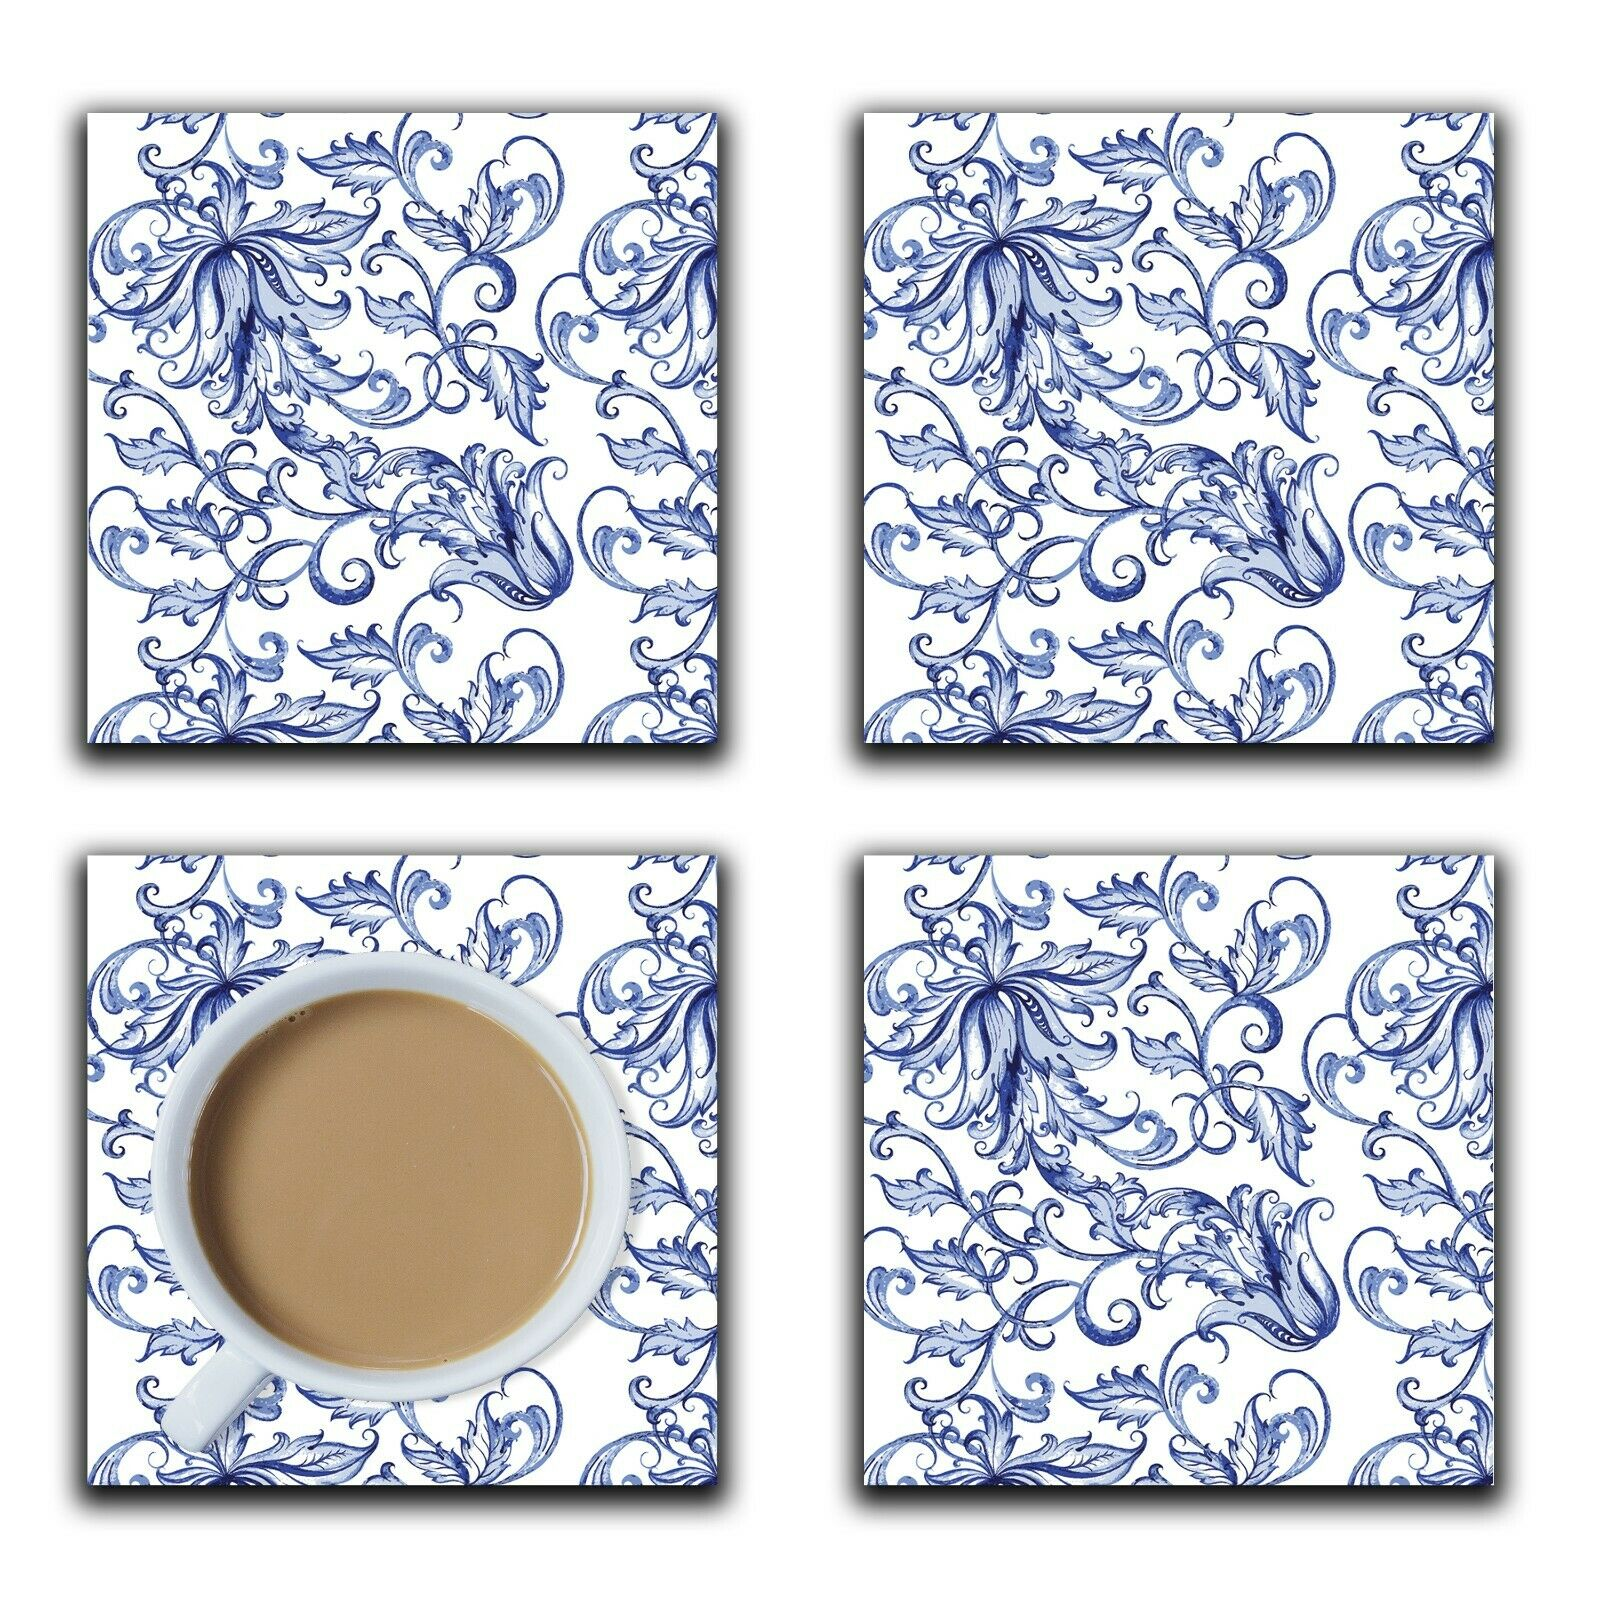 Embossi Printed Blue and White Porcelain Pattern, wood or ceramic tile, set of 4